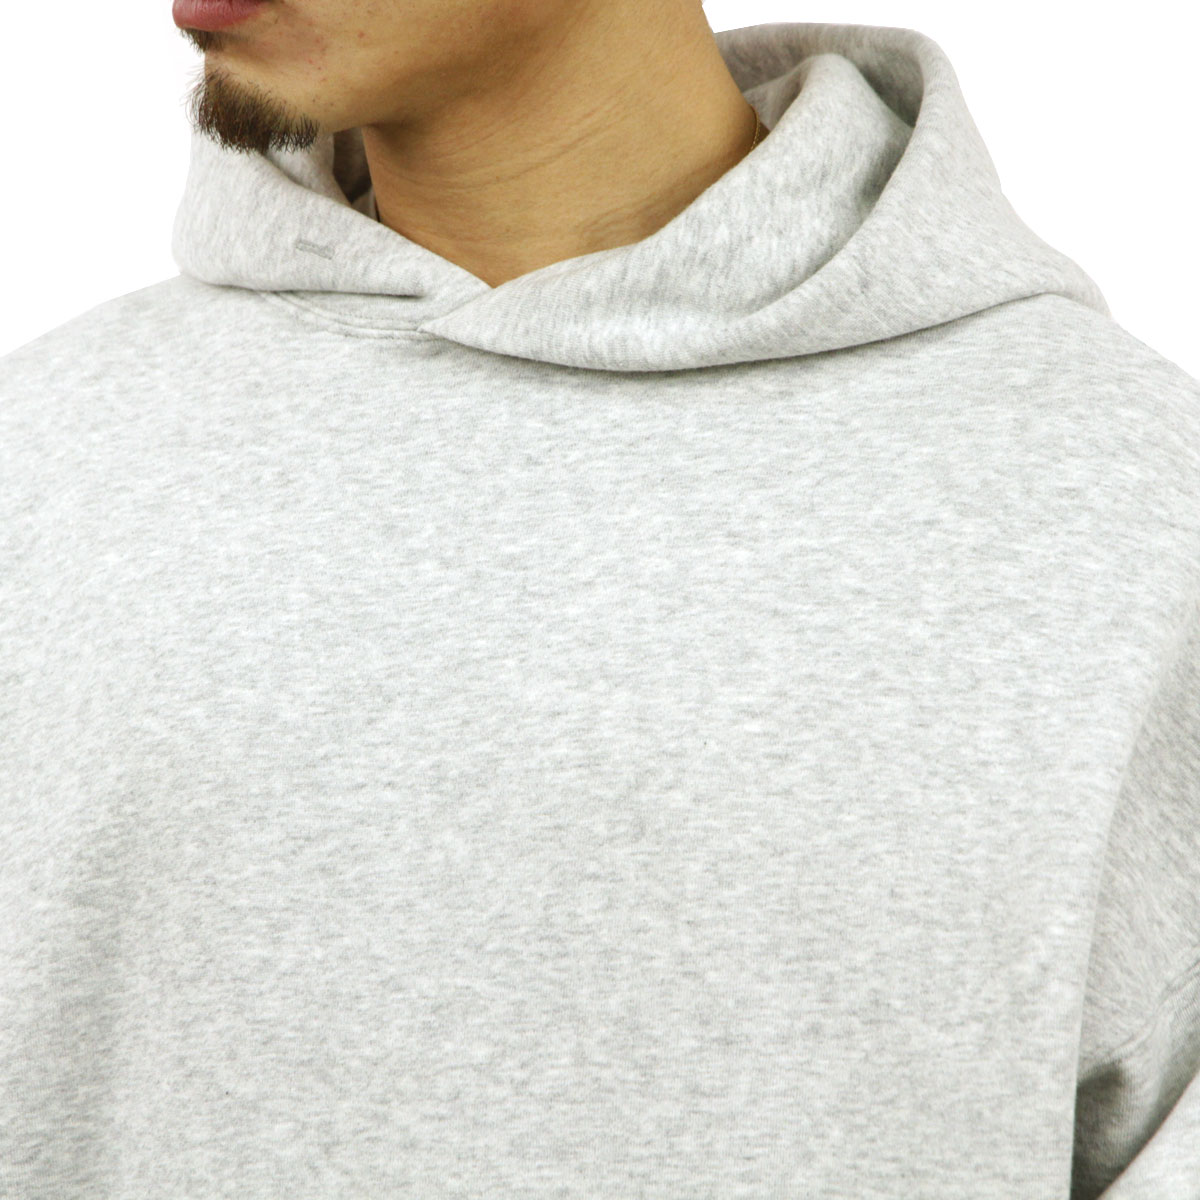 フィアオブゴッド パーカー メンズ 正規品 FEAR OF GOD プルオーバーパーカー  FOG - FEAR OF GOD ESSENTIALS GRAPHIC PULLOVER HEATHER GREY AA5B B1C C1D D5E E02F